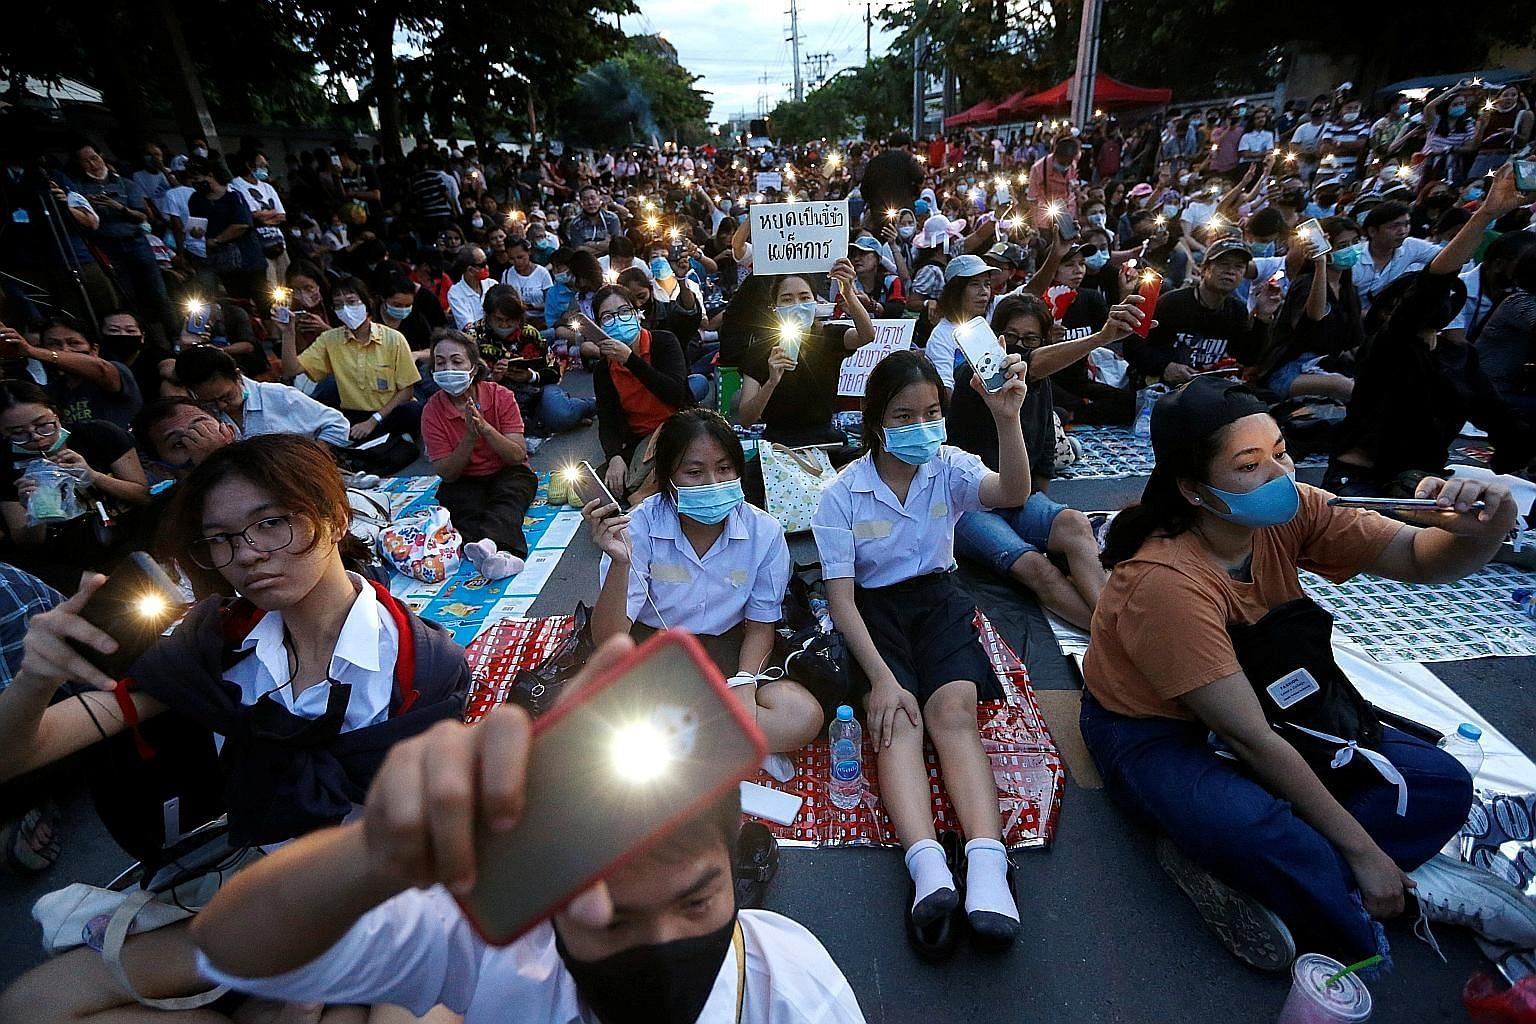 Pro-democracy protesters at a mass rally in front of Parliament in Bangkok yesterday to call for the ouster of Prime Minister Prayut Chan-o-cha and for reforms in the monarchy.